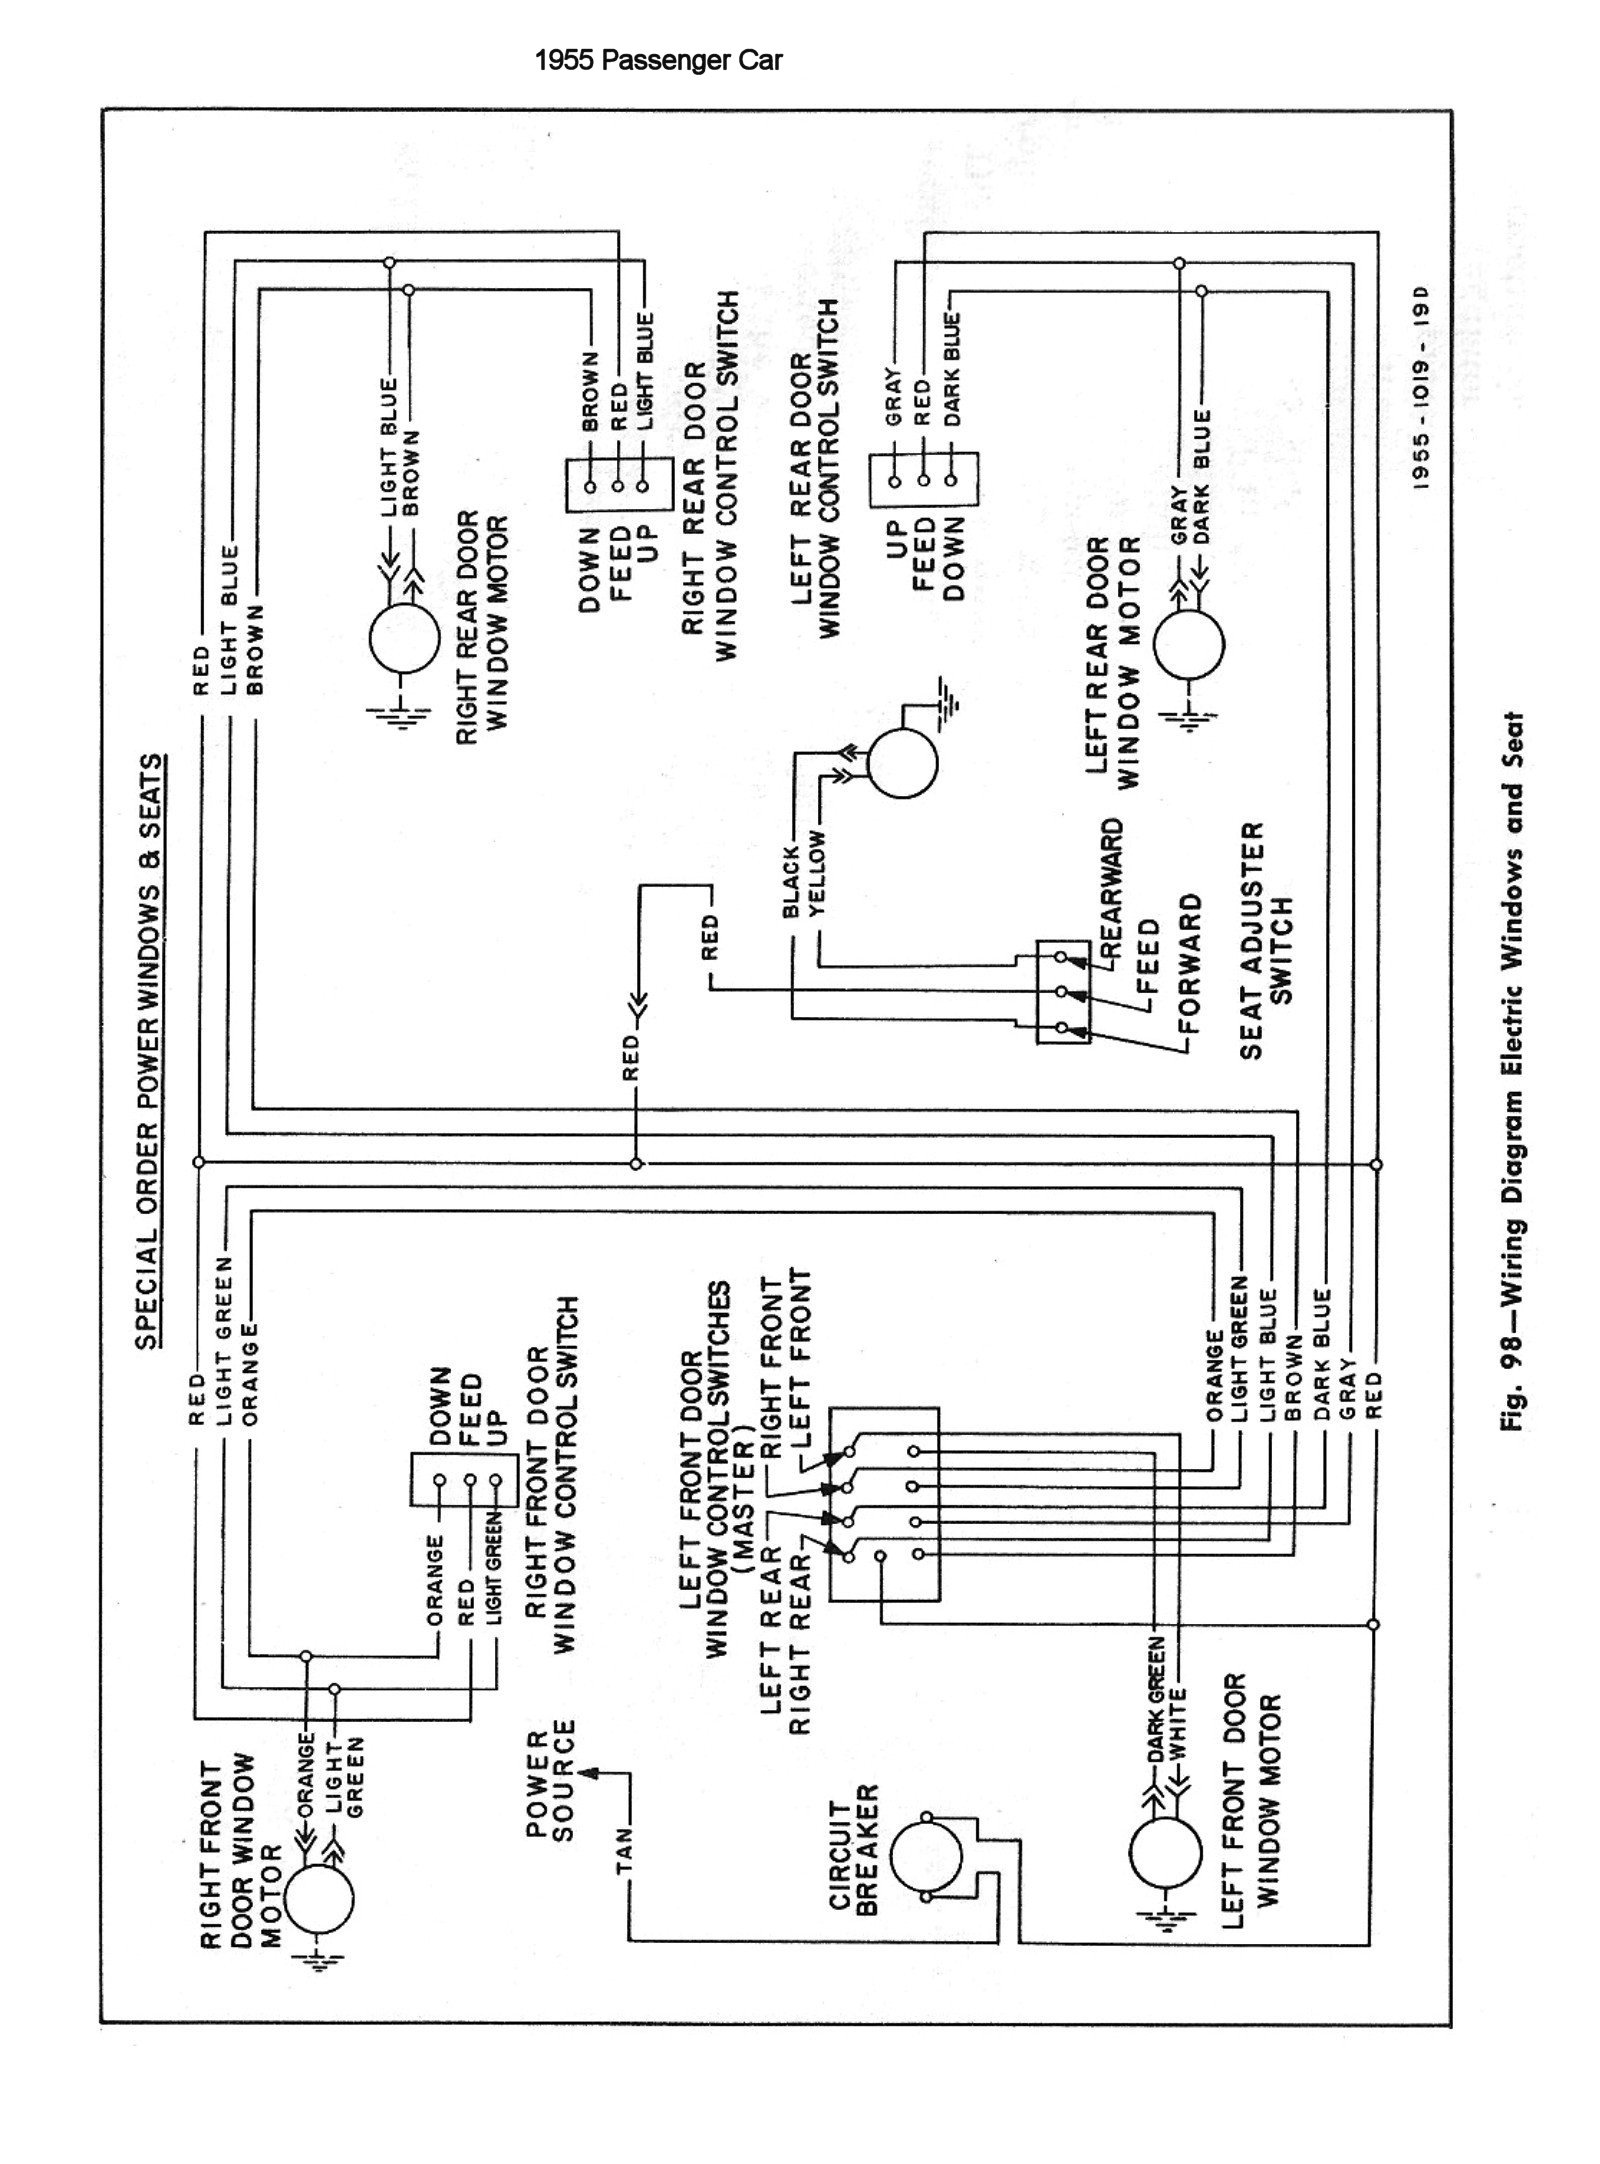 55csm0146 chevy wiring diagrams master control switch wiring diagram at bakdesigns.co